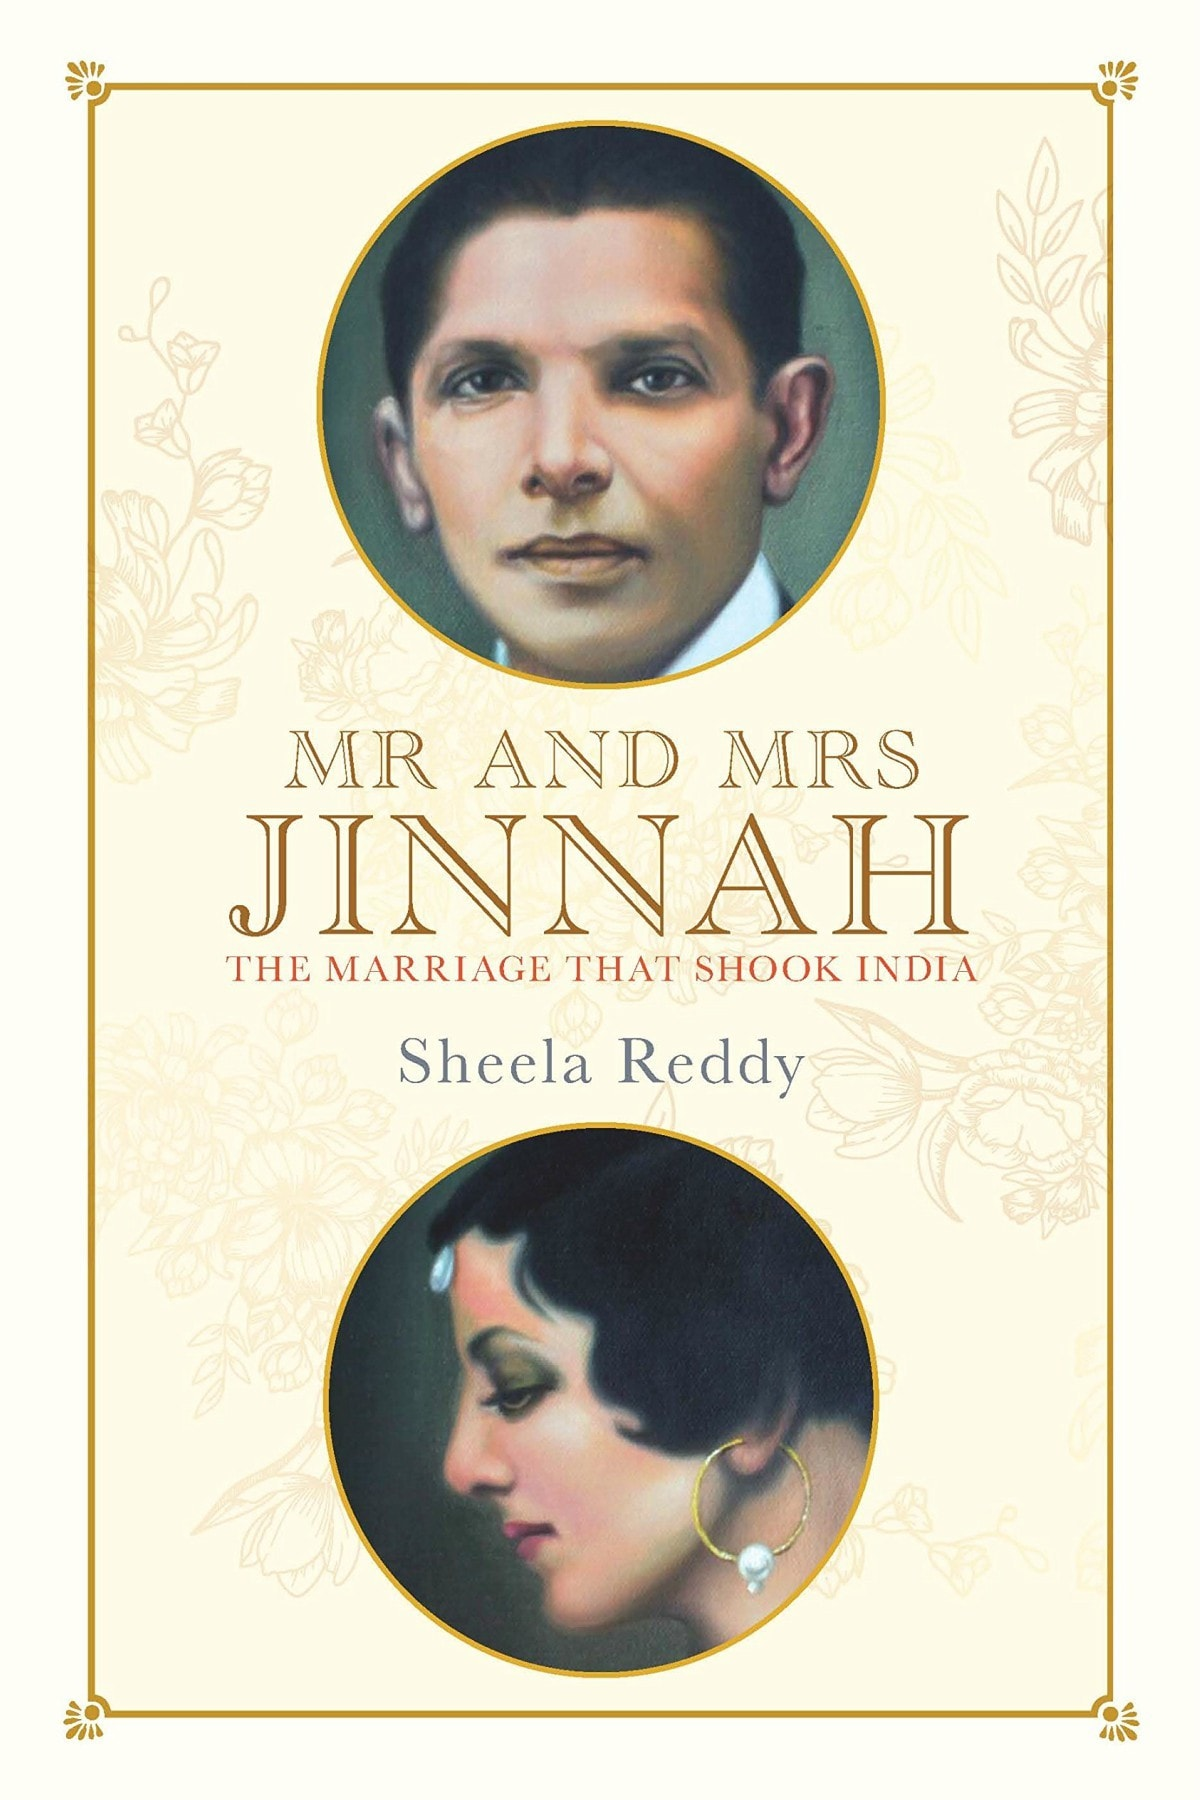 The cover of Mr and Mrs Jinnah by Sheela Reddy